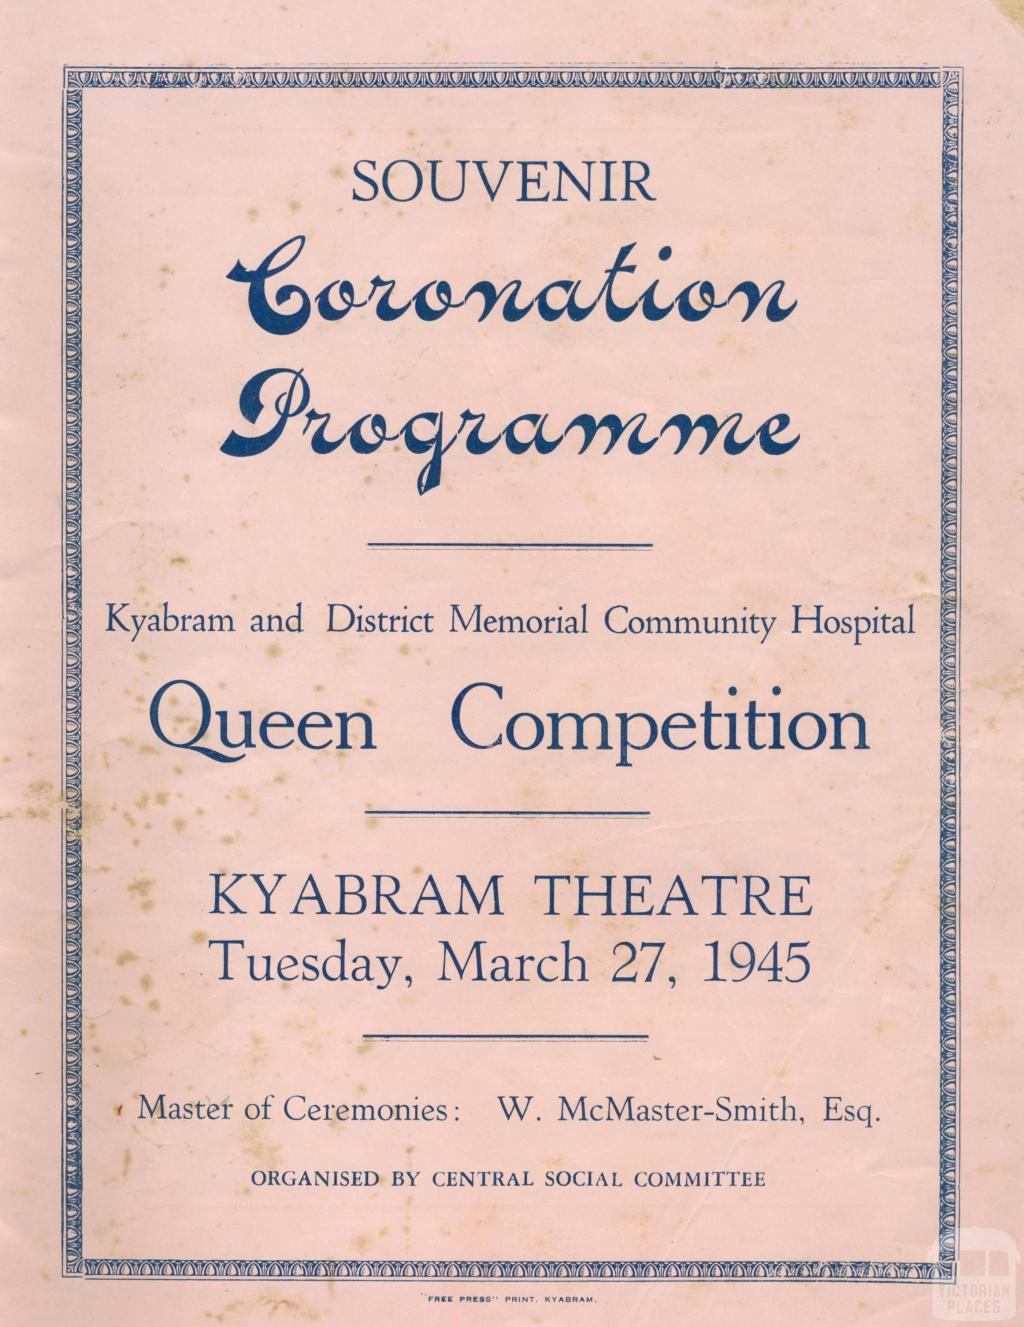 Cover, Kyabram and District Memorial Community Hospital, Souvenir Coronation Programme, 1945